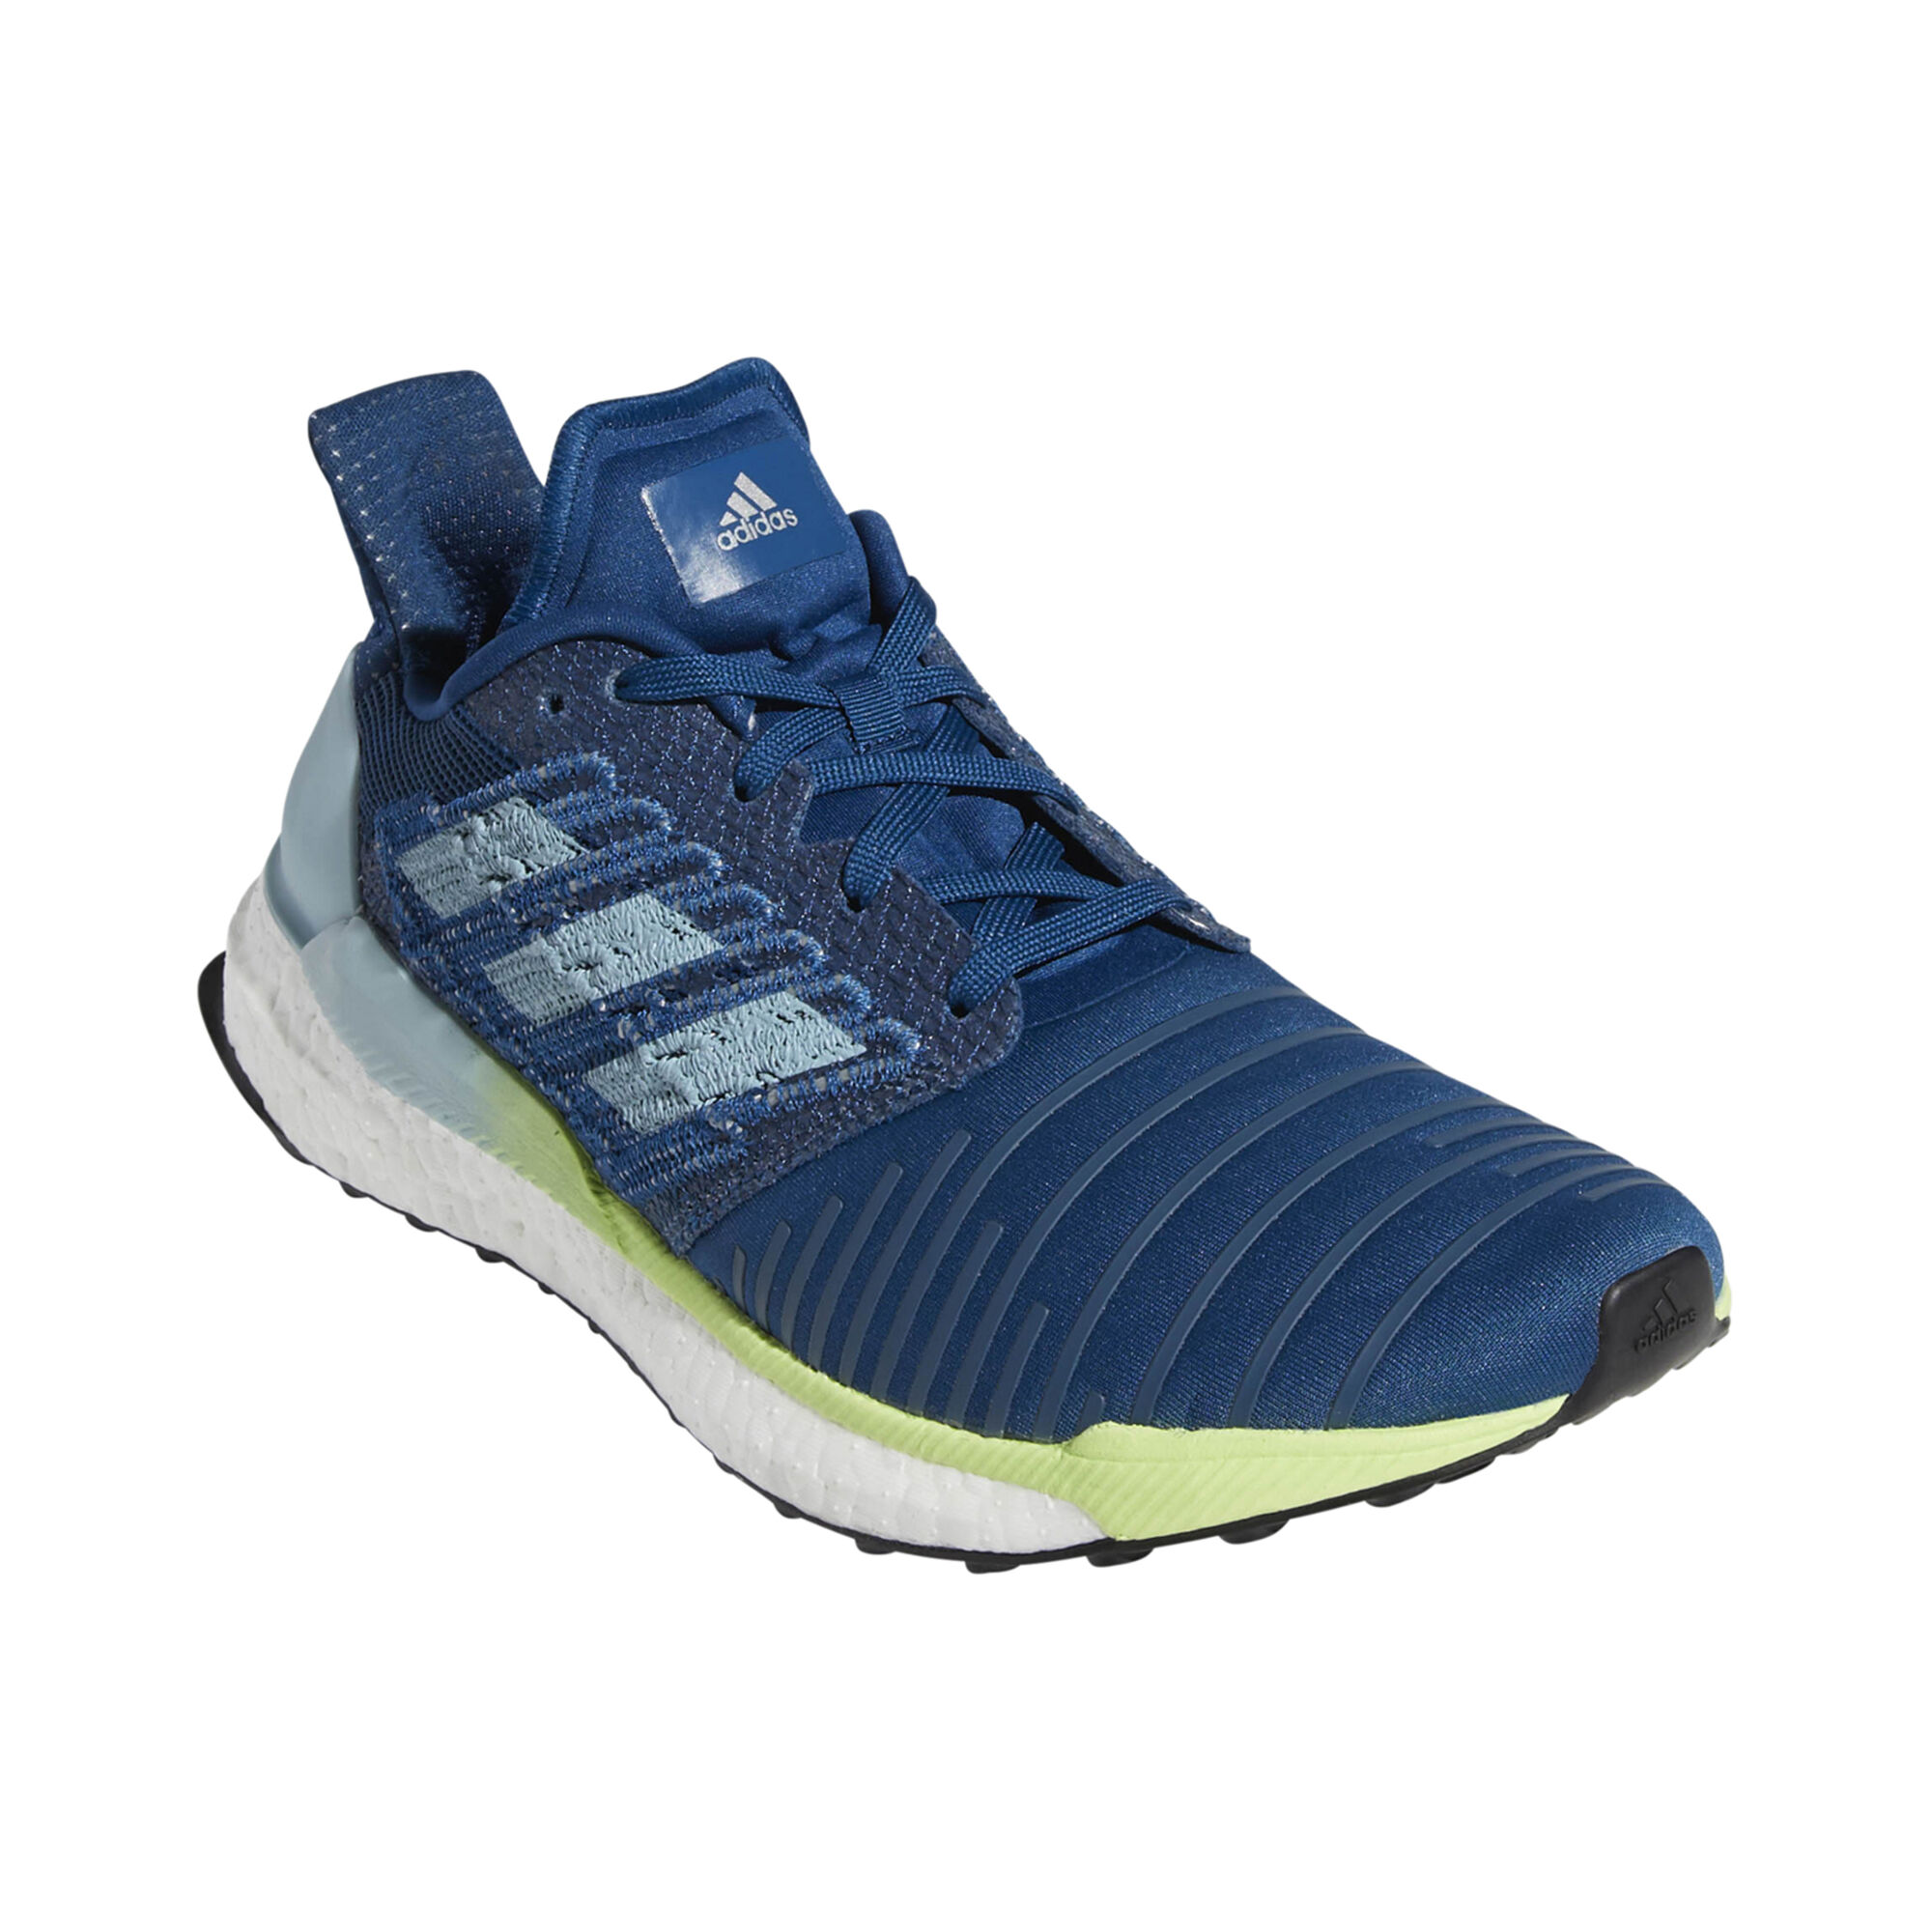 78795ea9dc4c7 buy adidas Solar Boost Neutral Running Shoe Men - Dark Blue